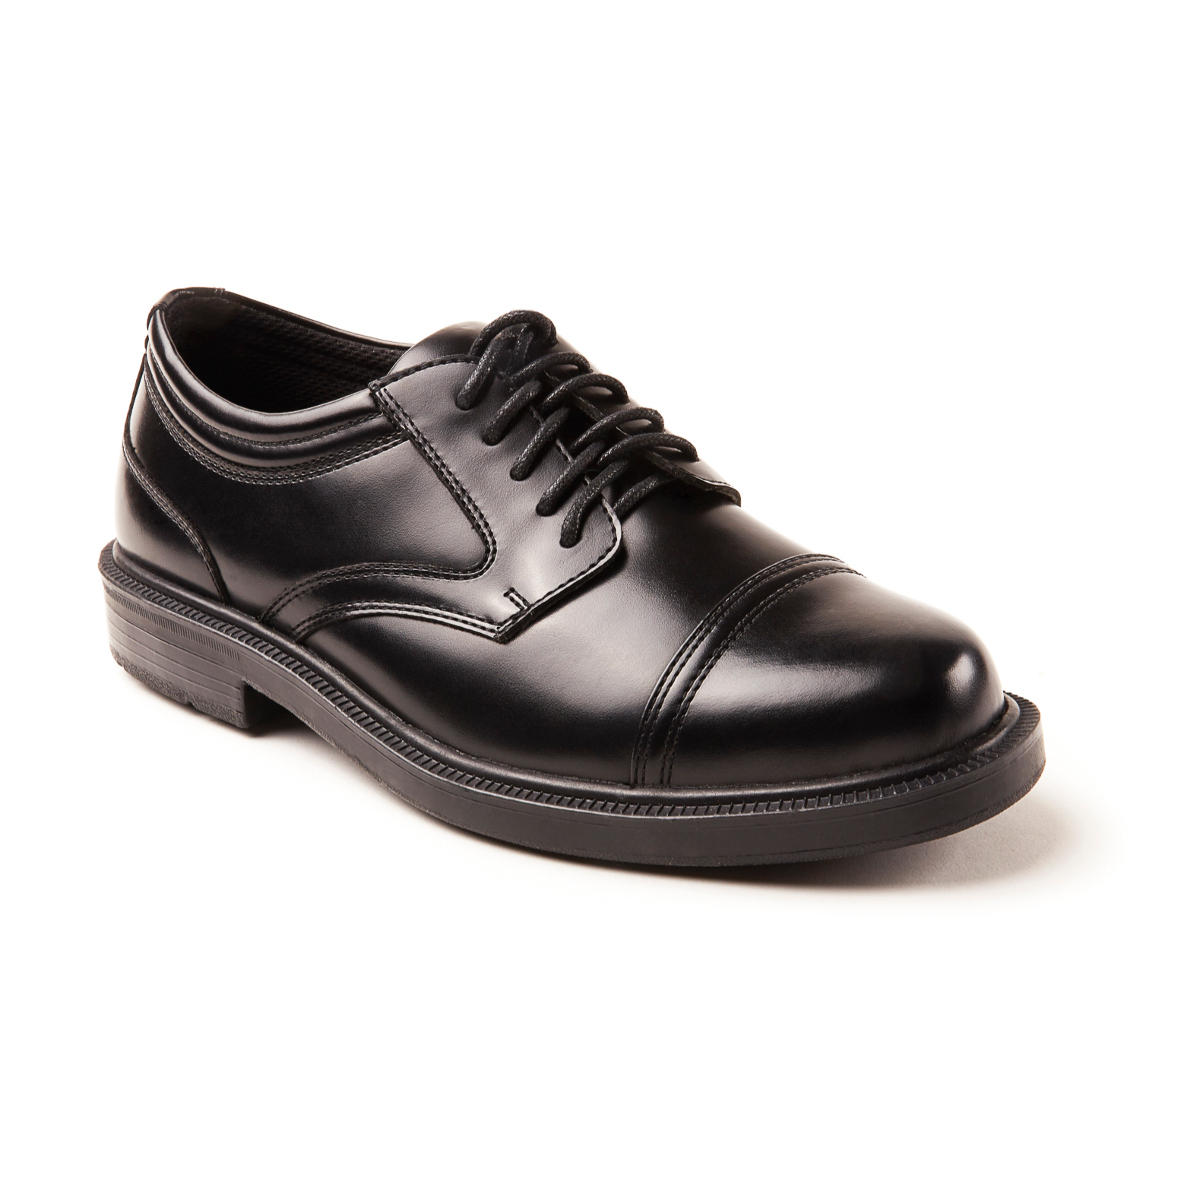 Deer Stags Men's Telegraph Shoes, Wide - Black, 7